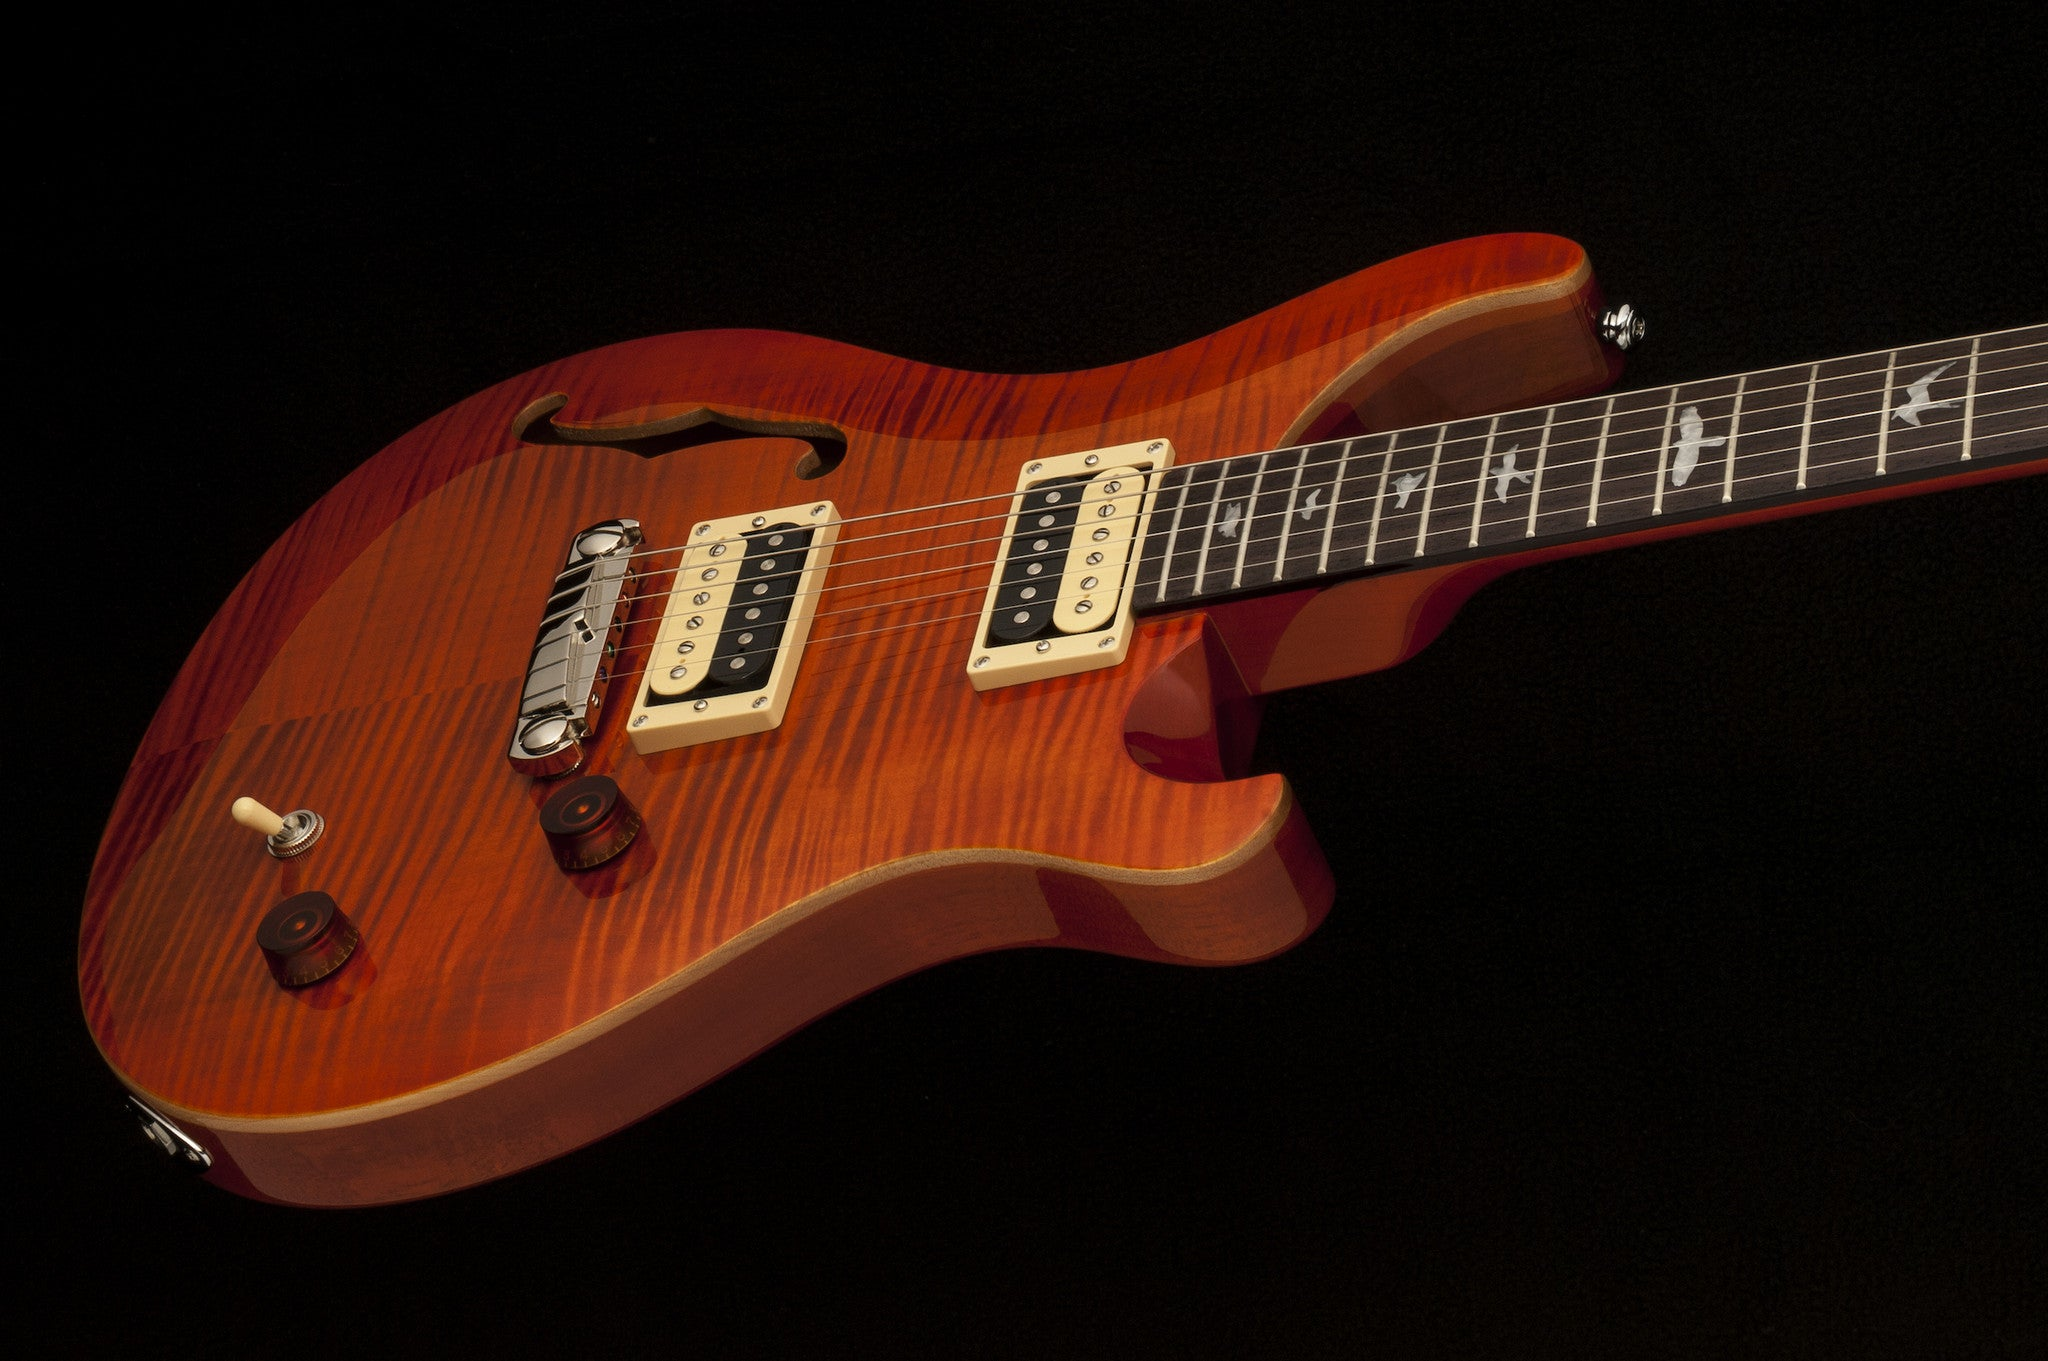 PRS SE Custom 22 Semi-Hollow (NEW!) Orange PRS SE - HIENDGUITAR.COM